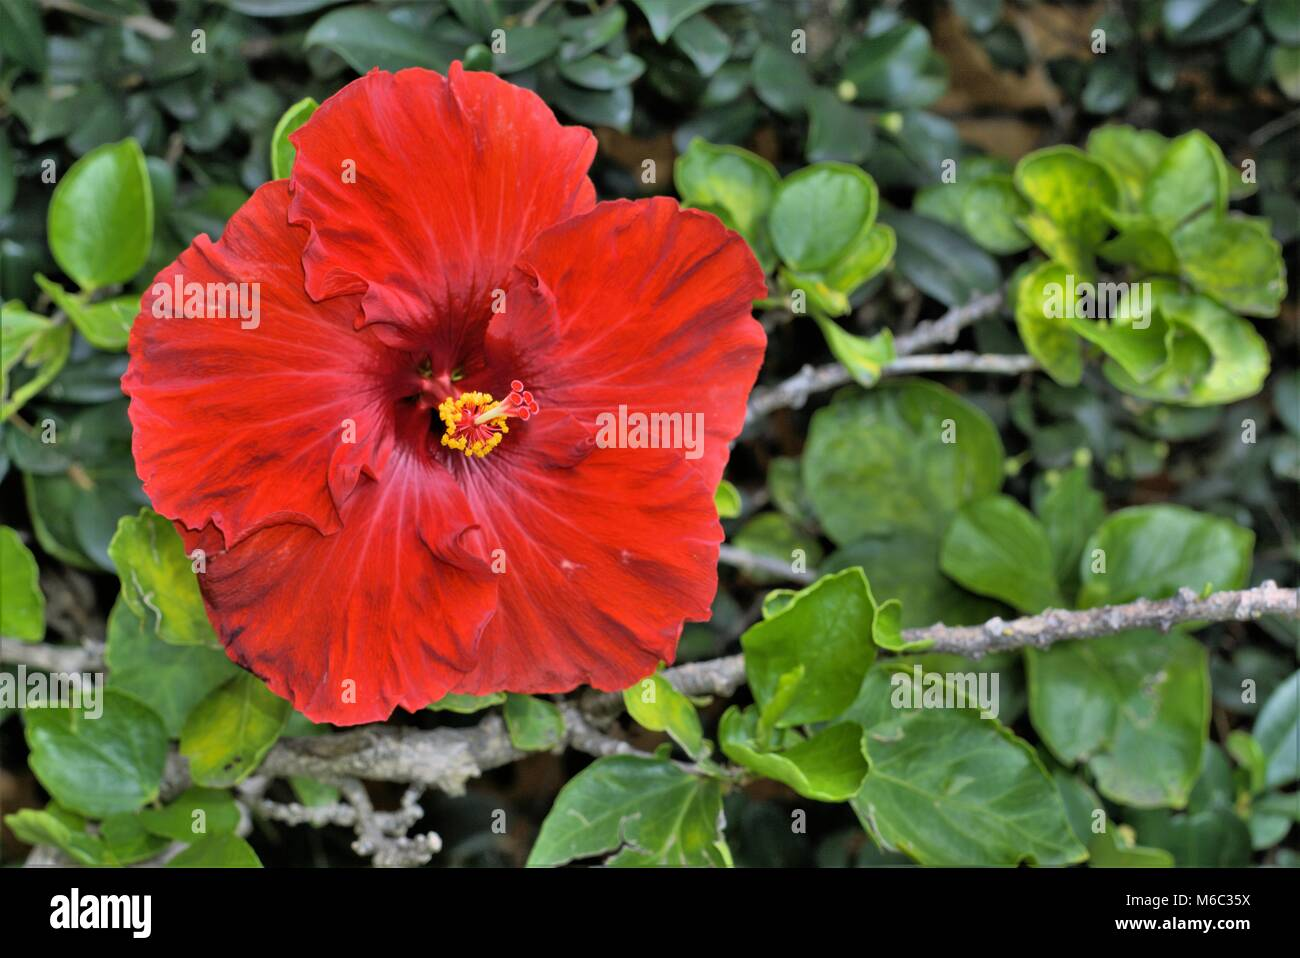 Hibiscus Flower In Australia Bright Red Hibiscus Or Hibiscus Stock